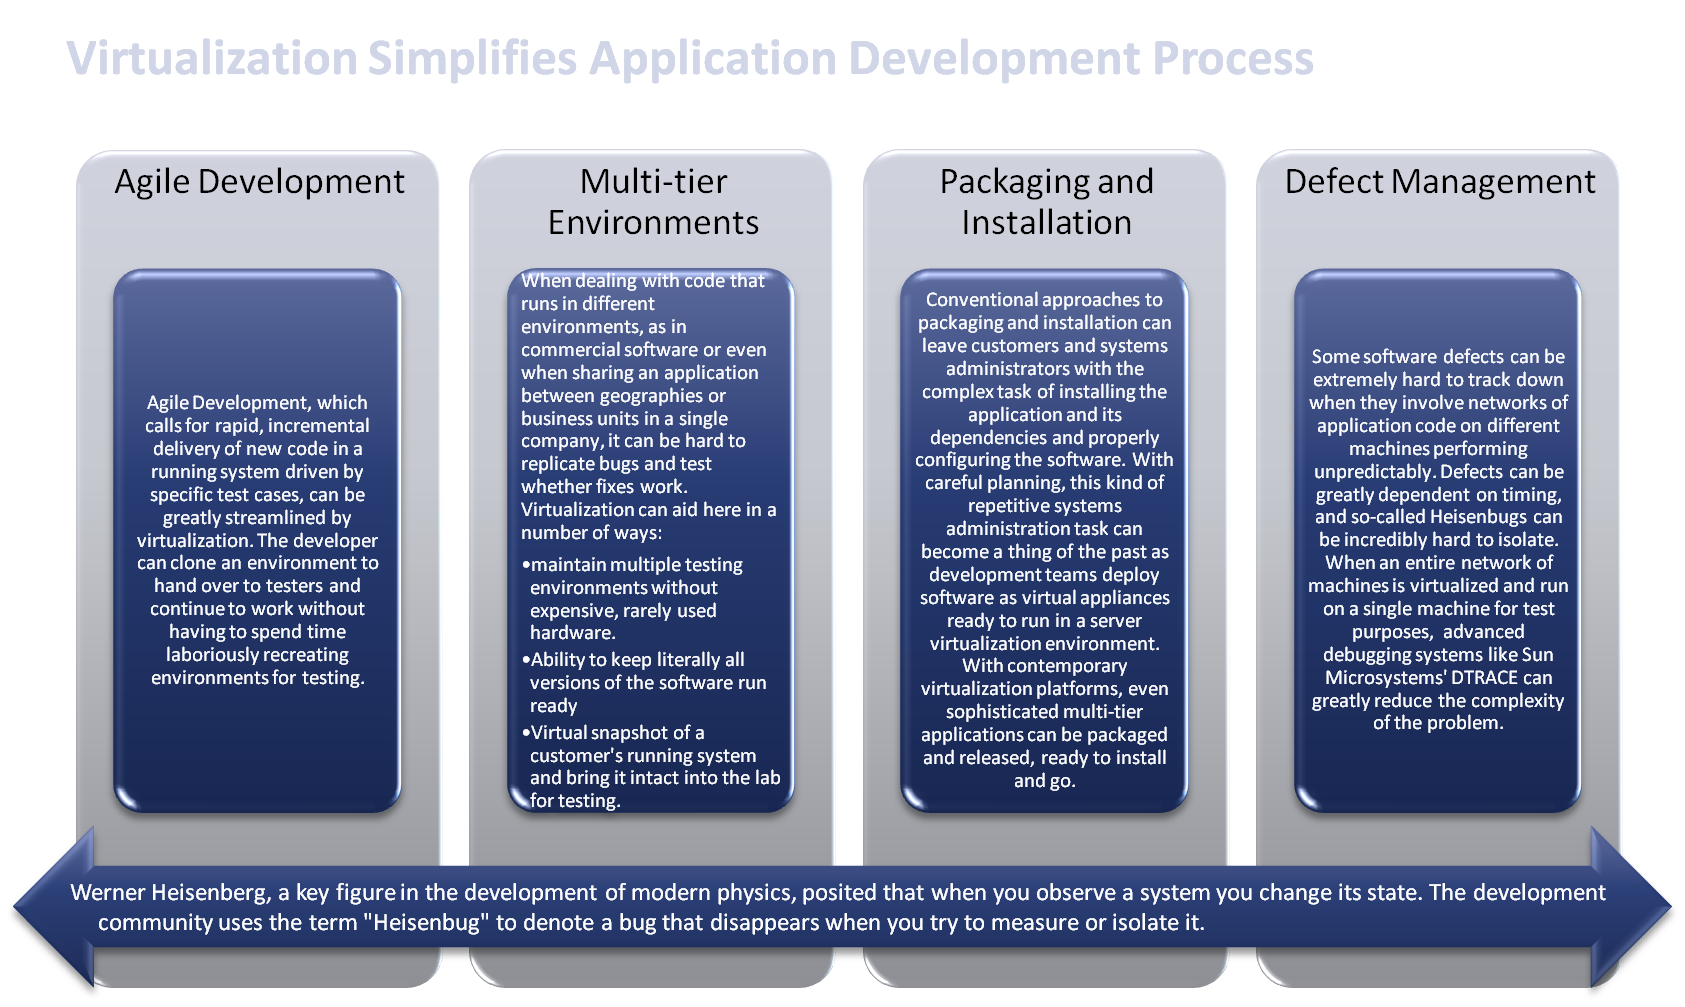 Application Development and DevOps Benefits